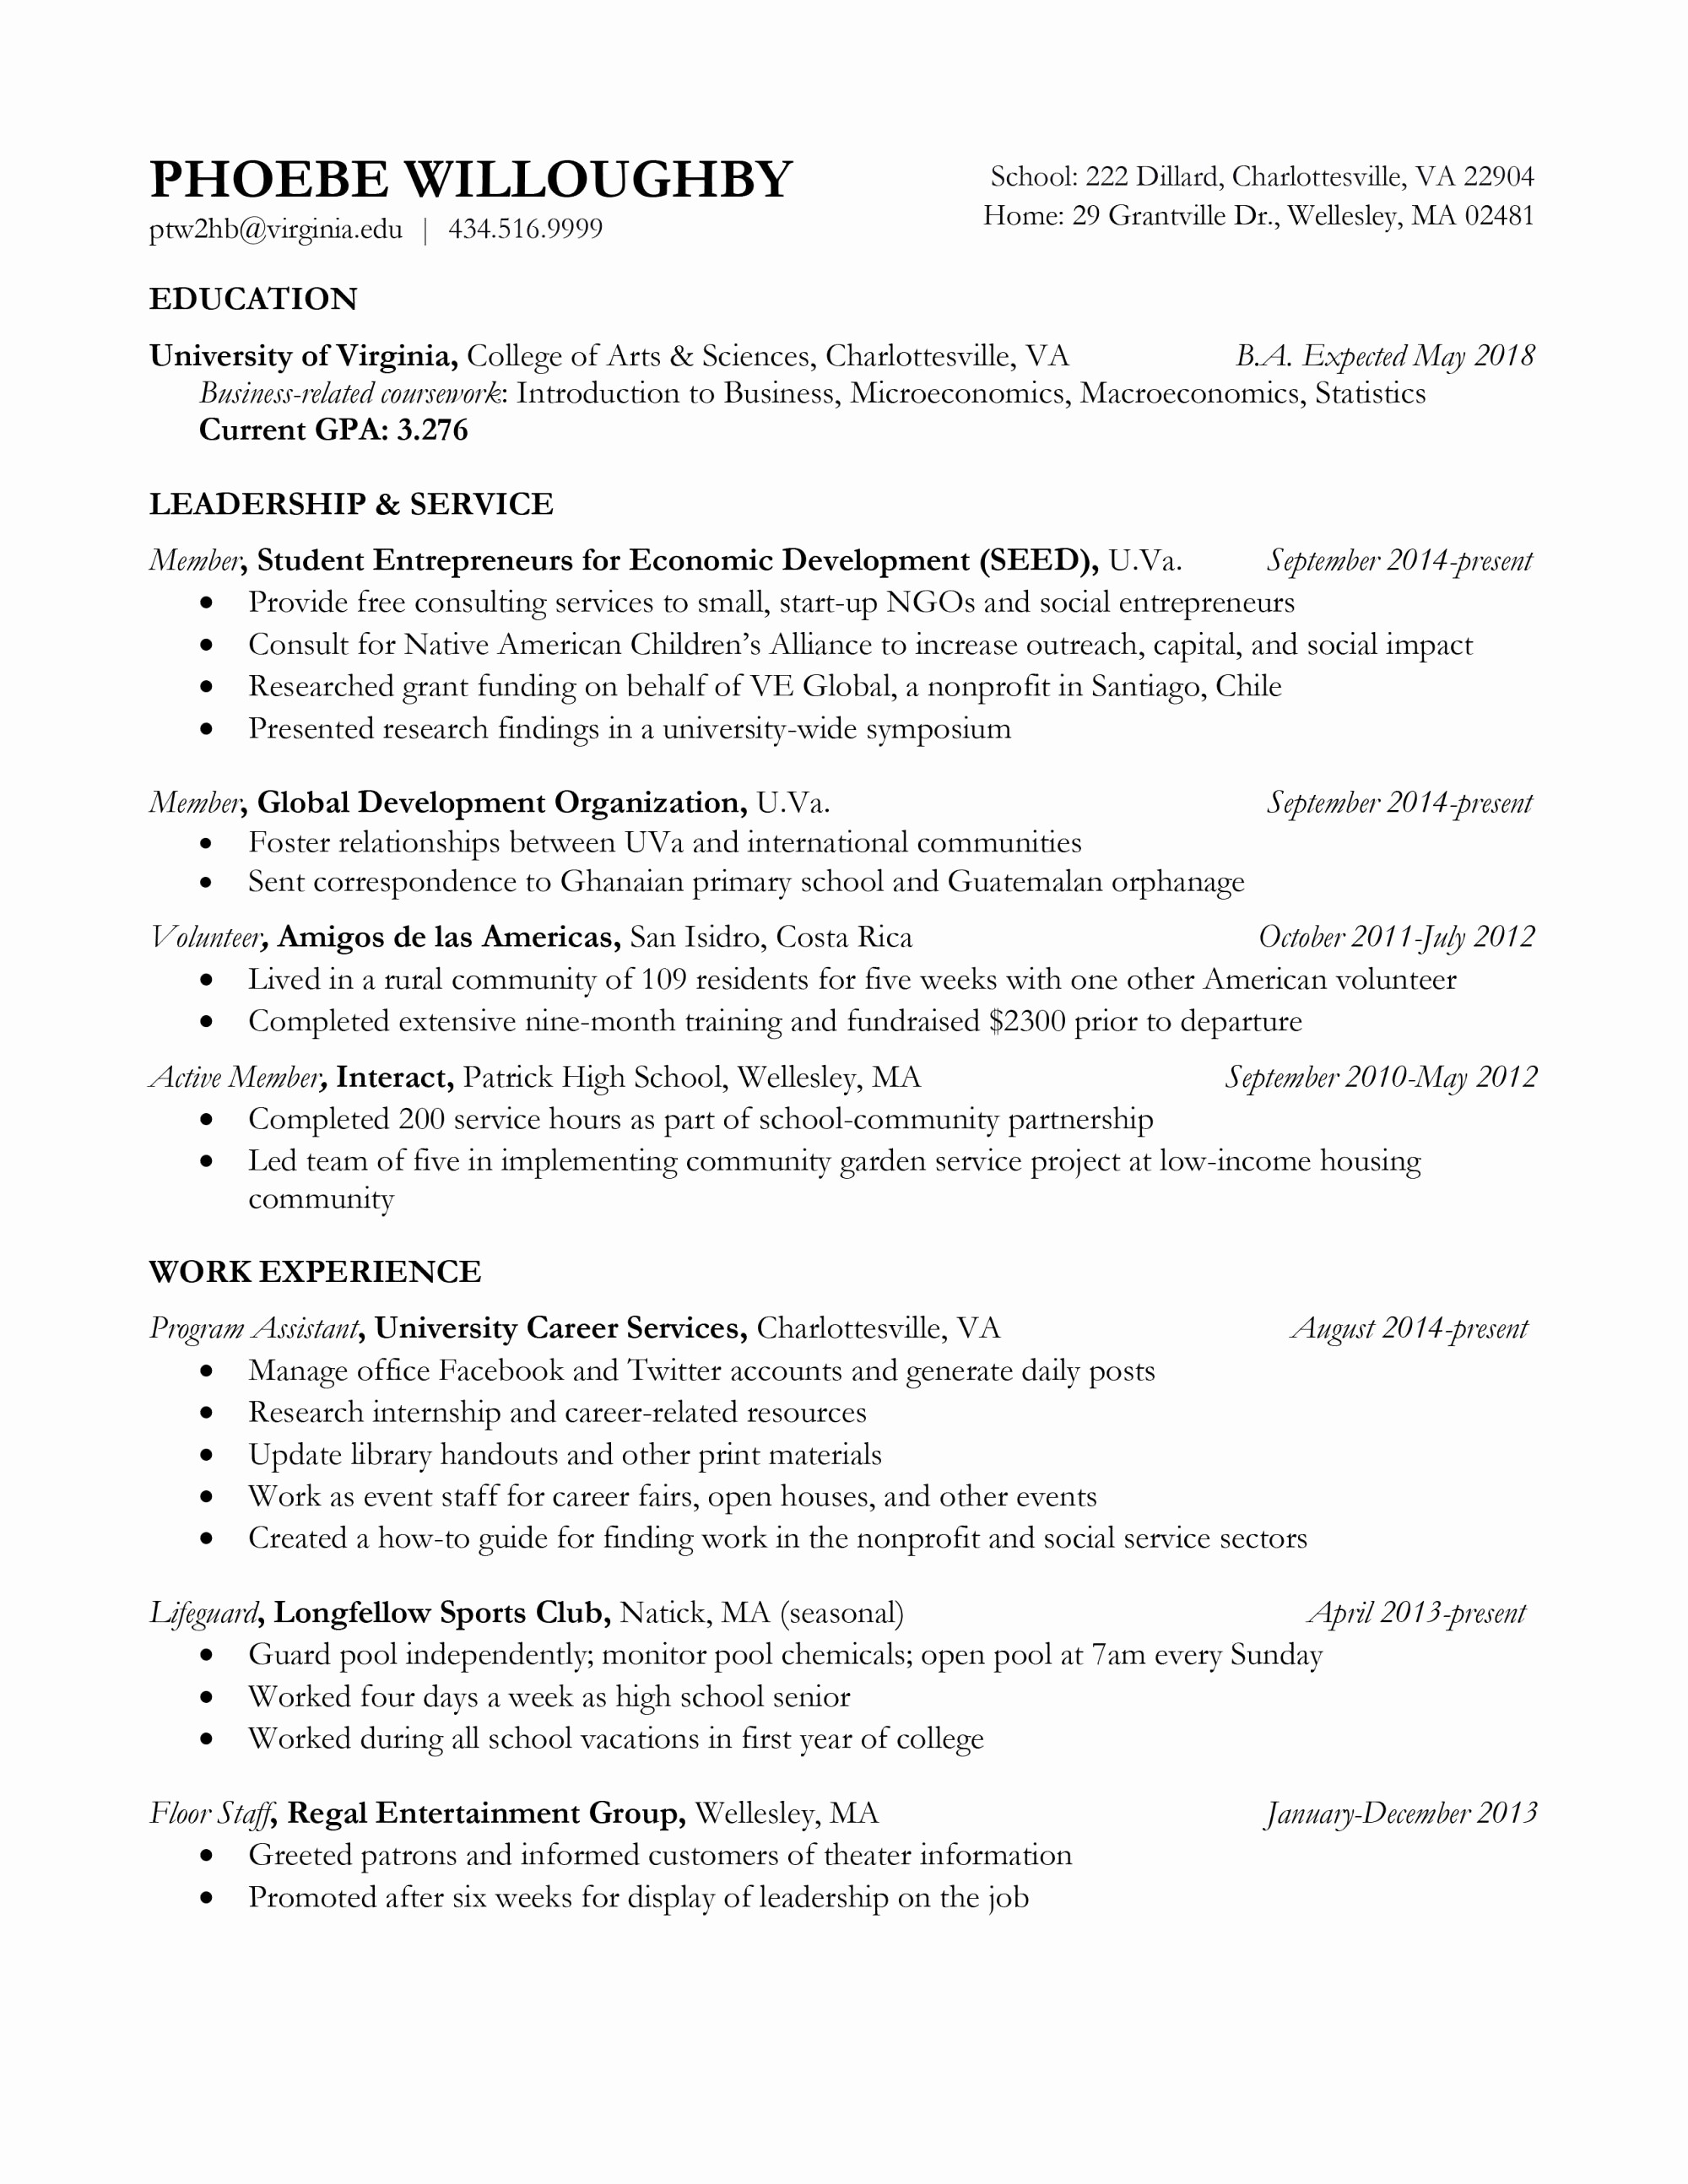 Lifeguard Responsibilities for Resume - 15 Resume Introduction Examples